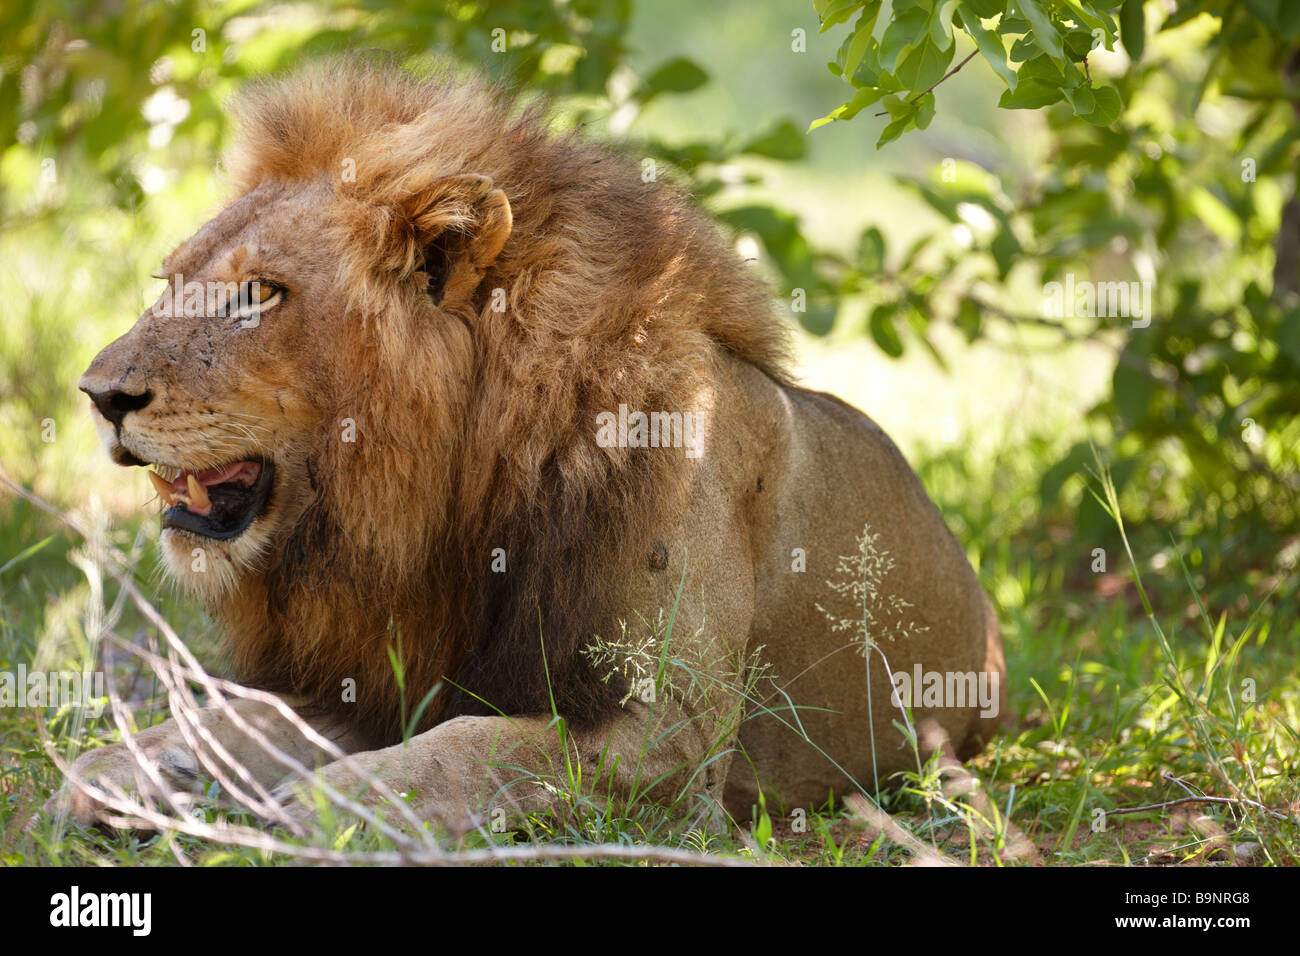 a male lion resting in the bush, Kruger National Park, South Africa - Stock Image